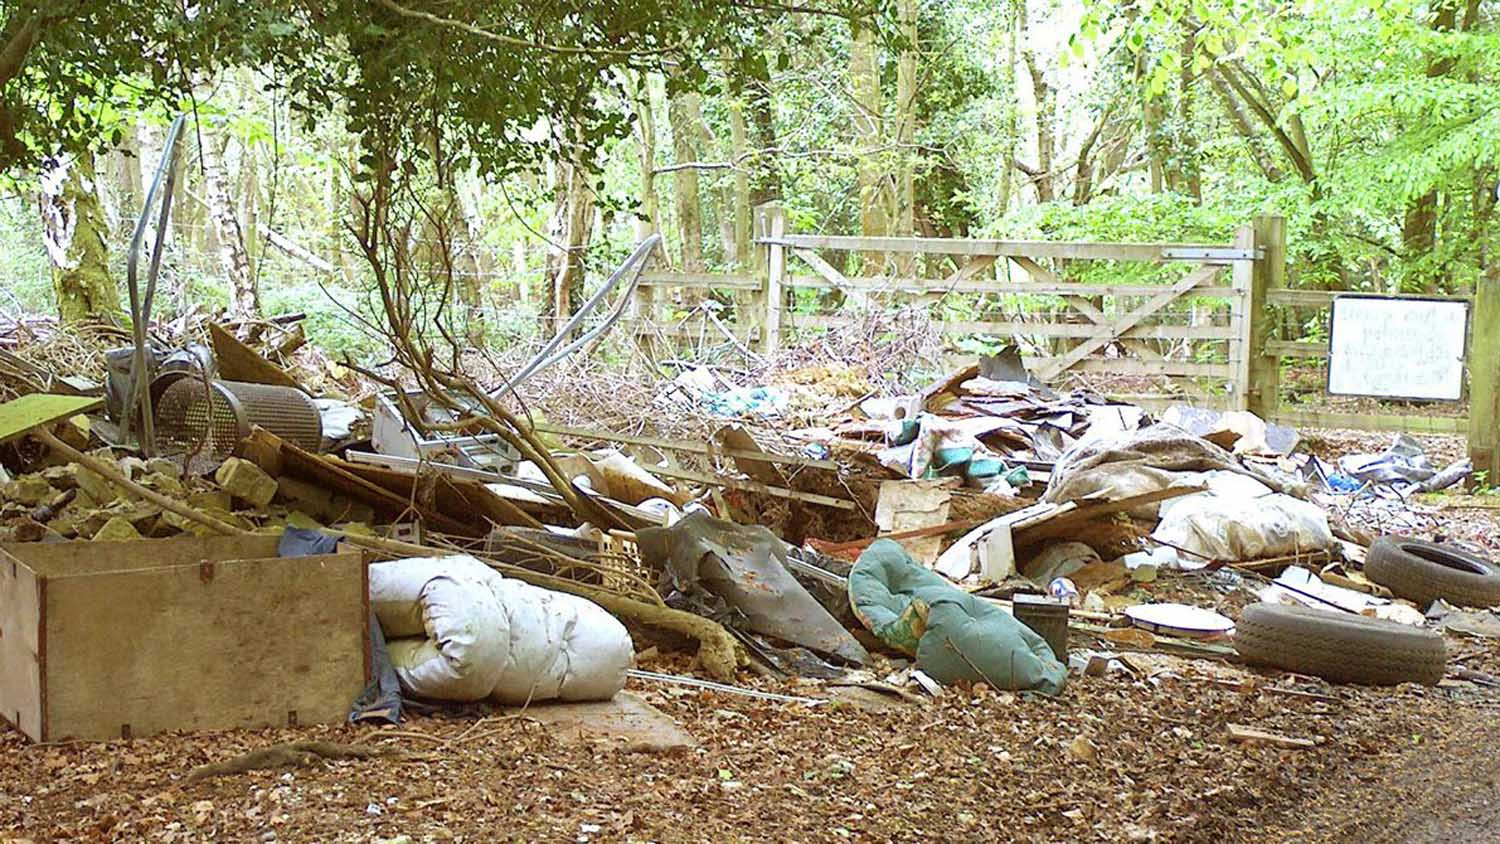 Know your rights when it comes to fly-tipping